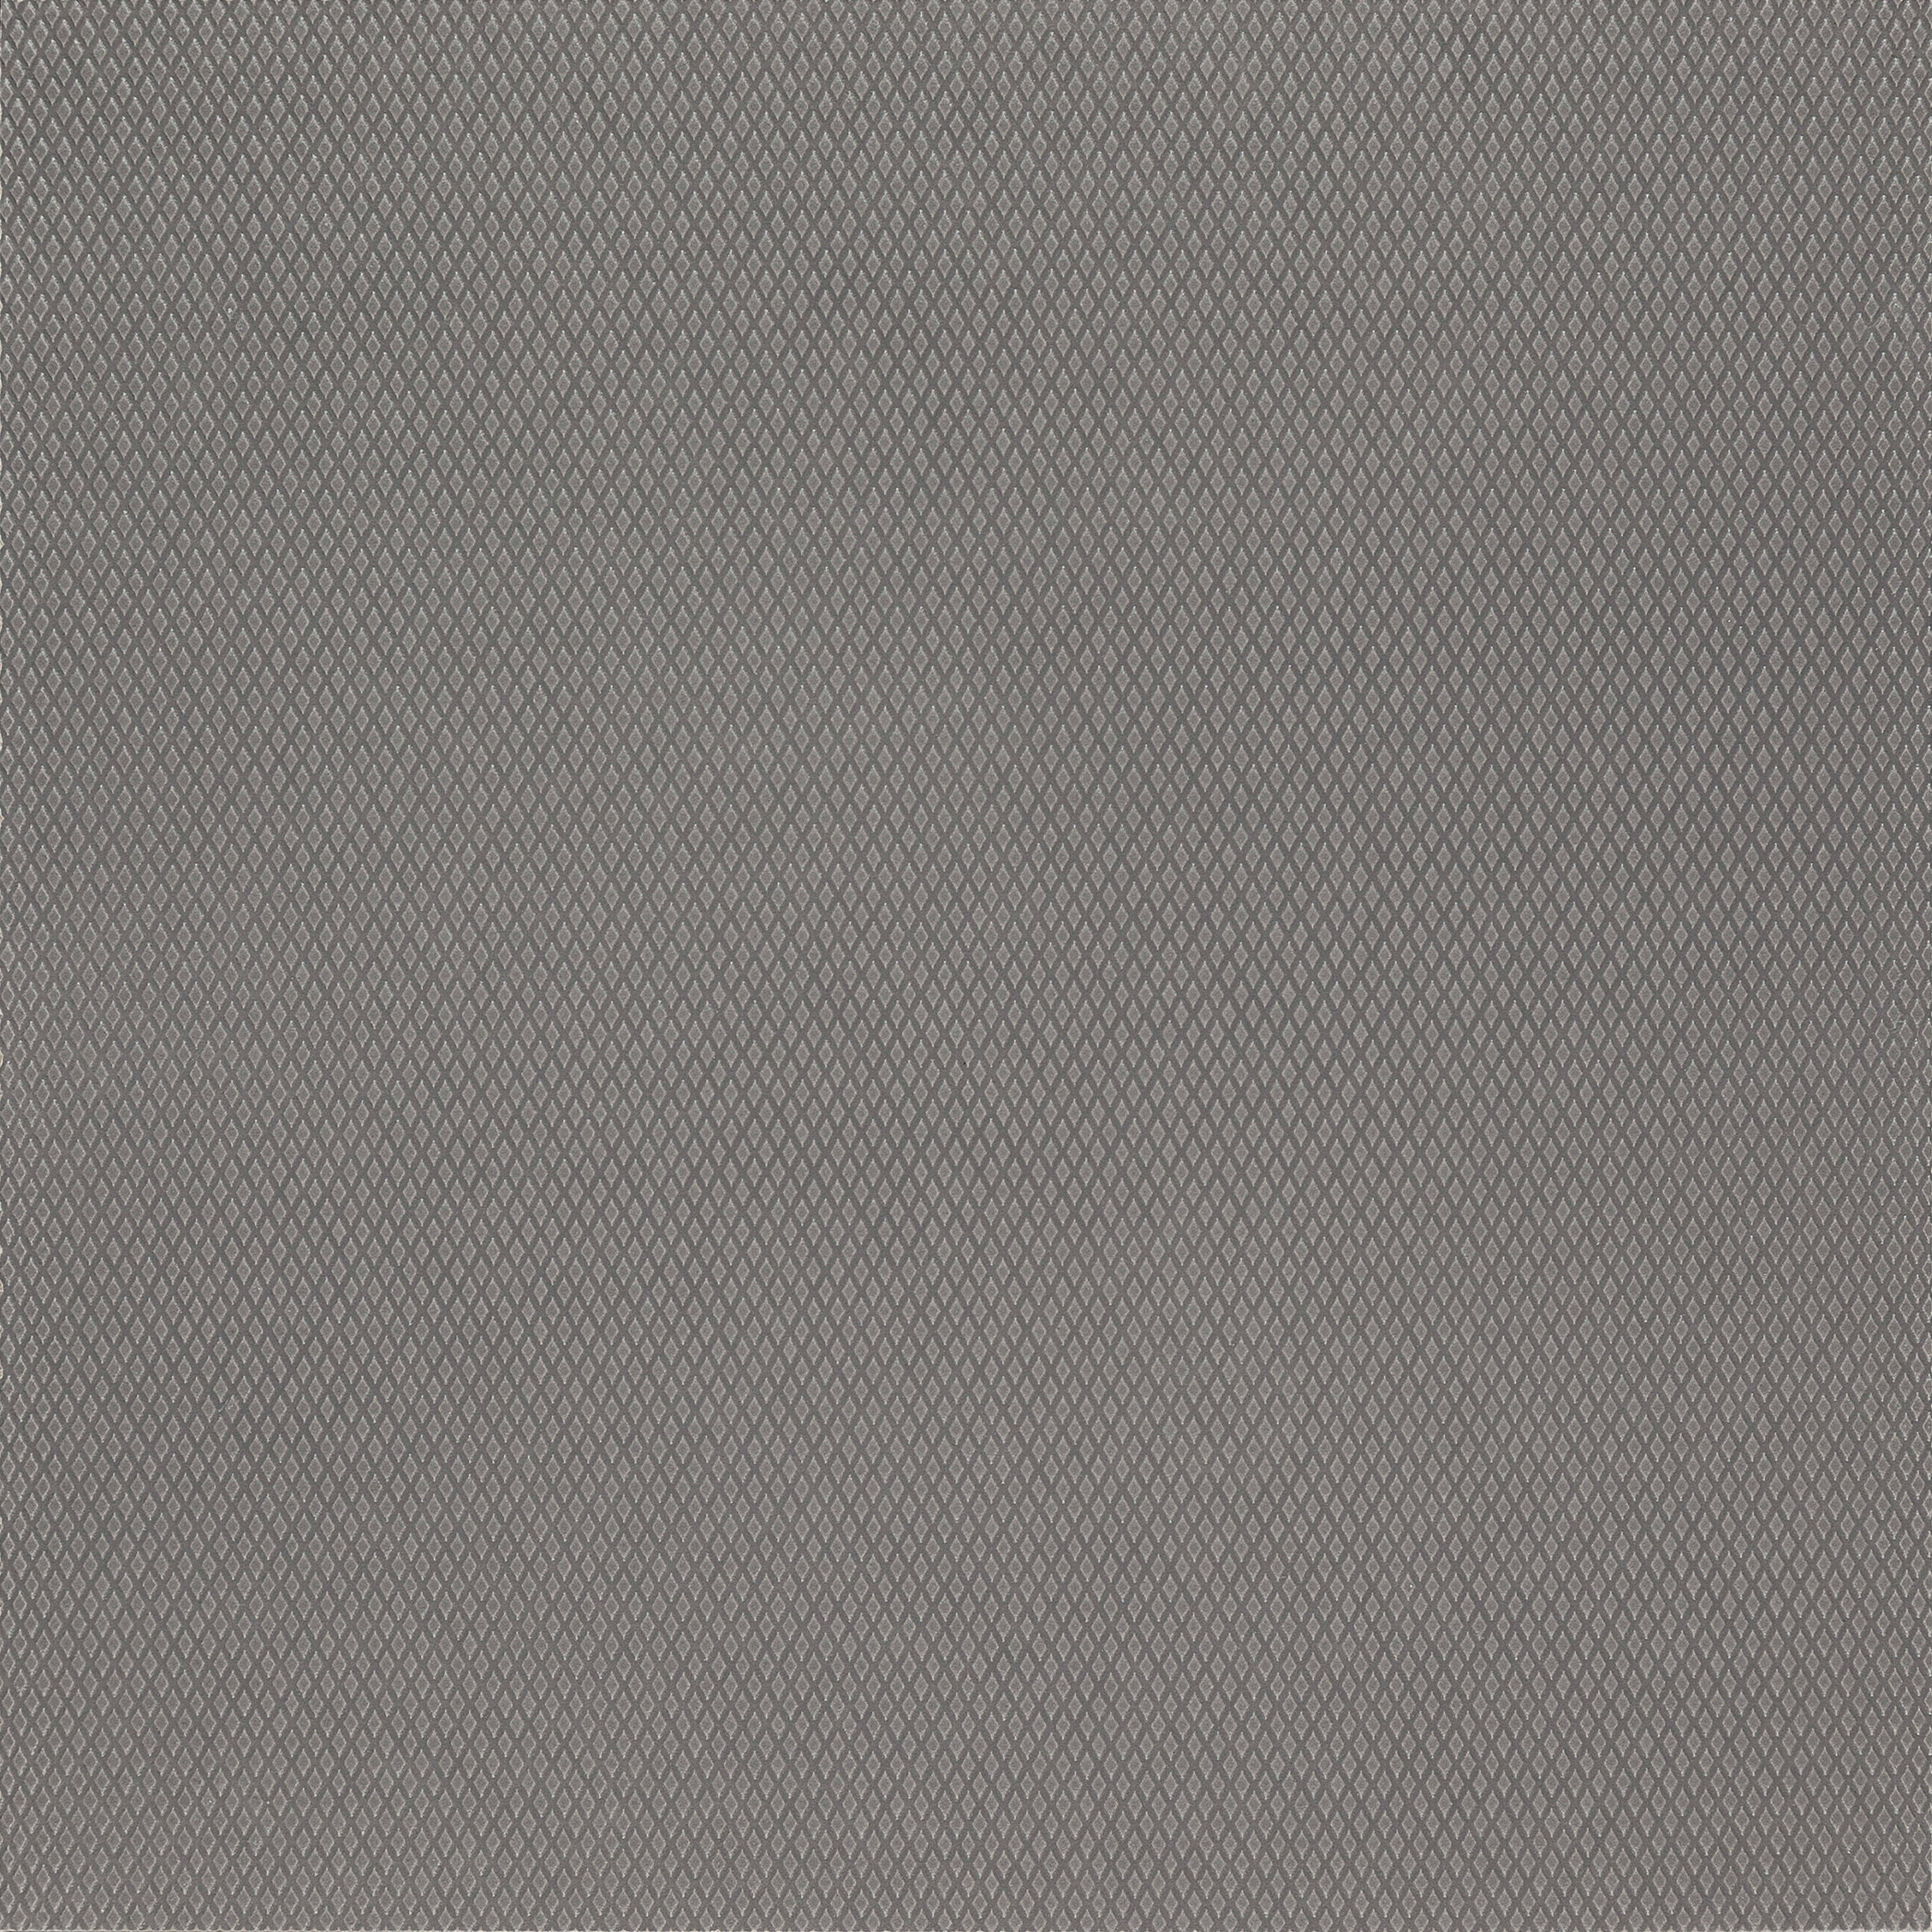 Mutina_Rombini Carre Uni Grey 40x40rett. 1X choice